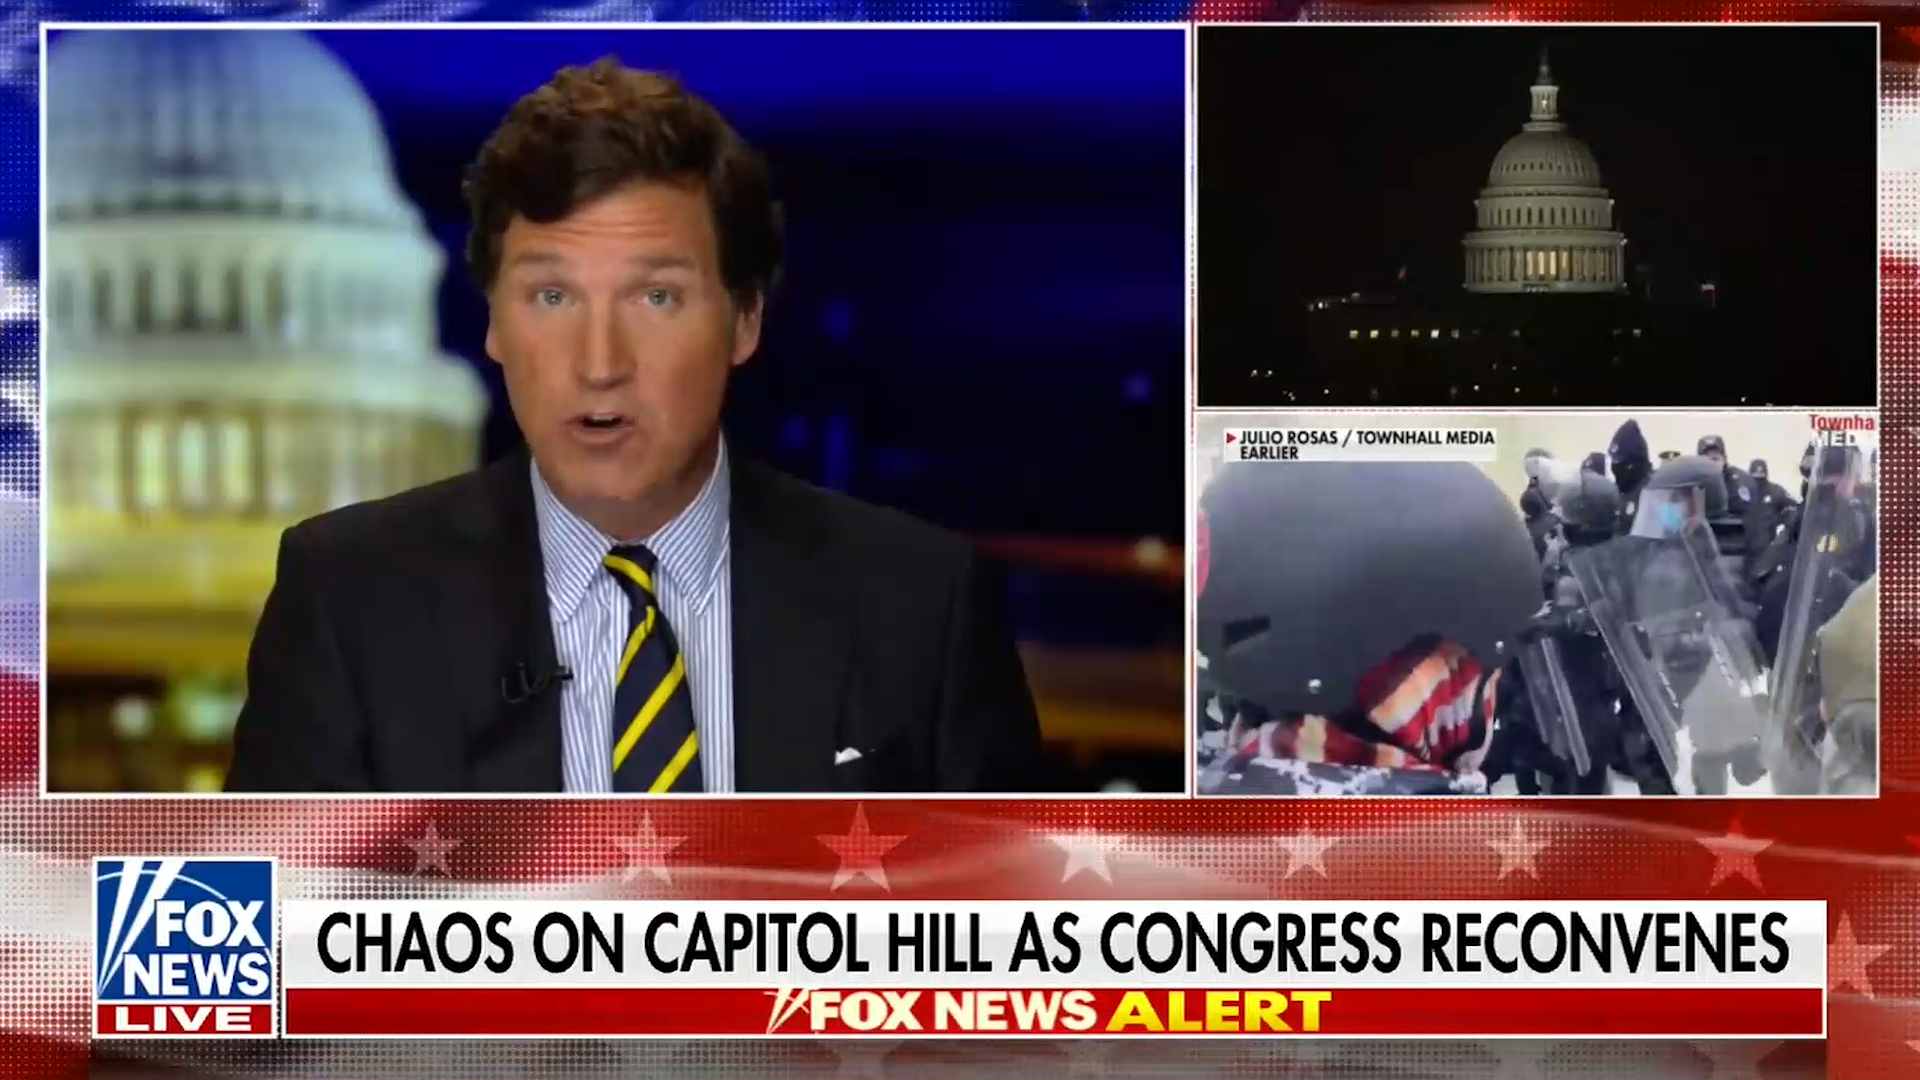 Rep. Matt Gaetz and other GOP politicians baselessly suggest antifa is to blame for pro-Trump mob rioting into Capitol